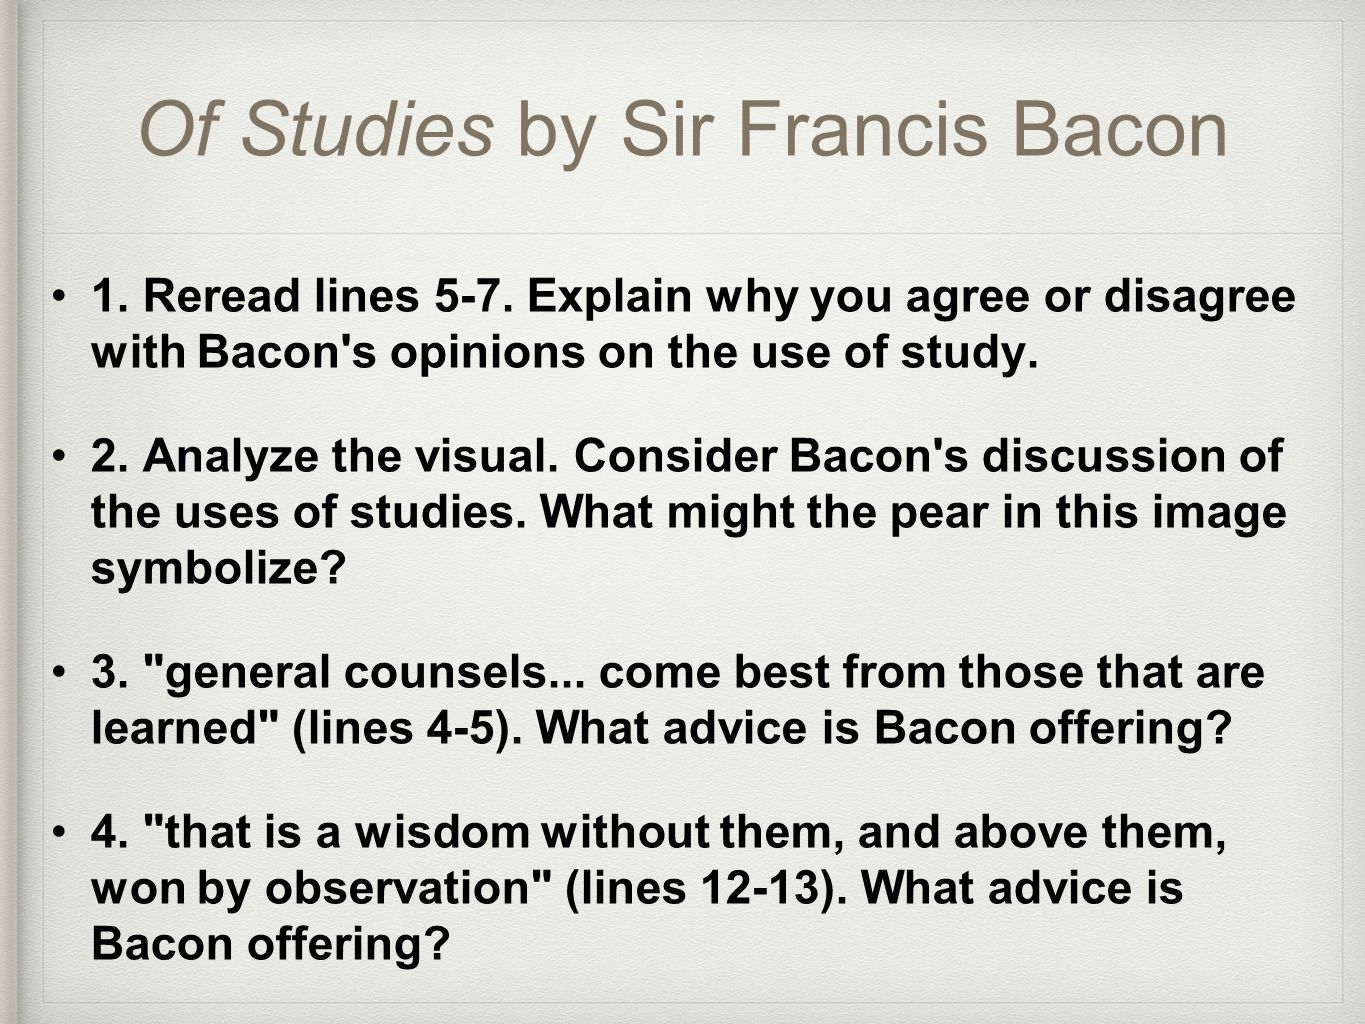 critical analysis of the essay of studies by francis bacon Francis bacon claims studies serve purposes for delight, ornament, and  ability in his view, studies help enrich life, both for enjoyment and practical.